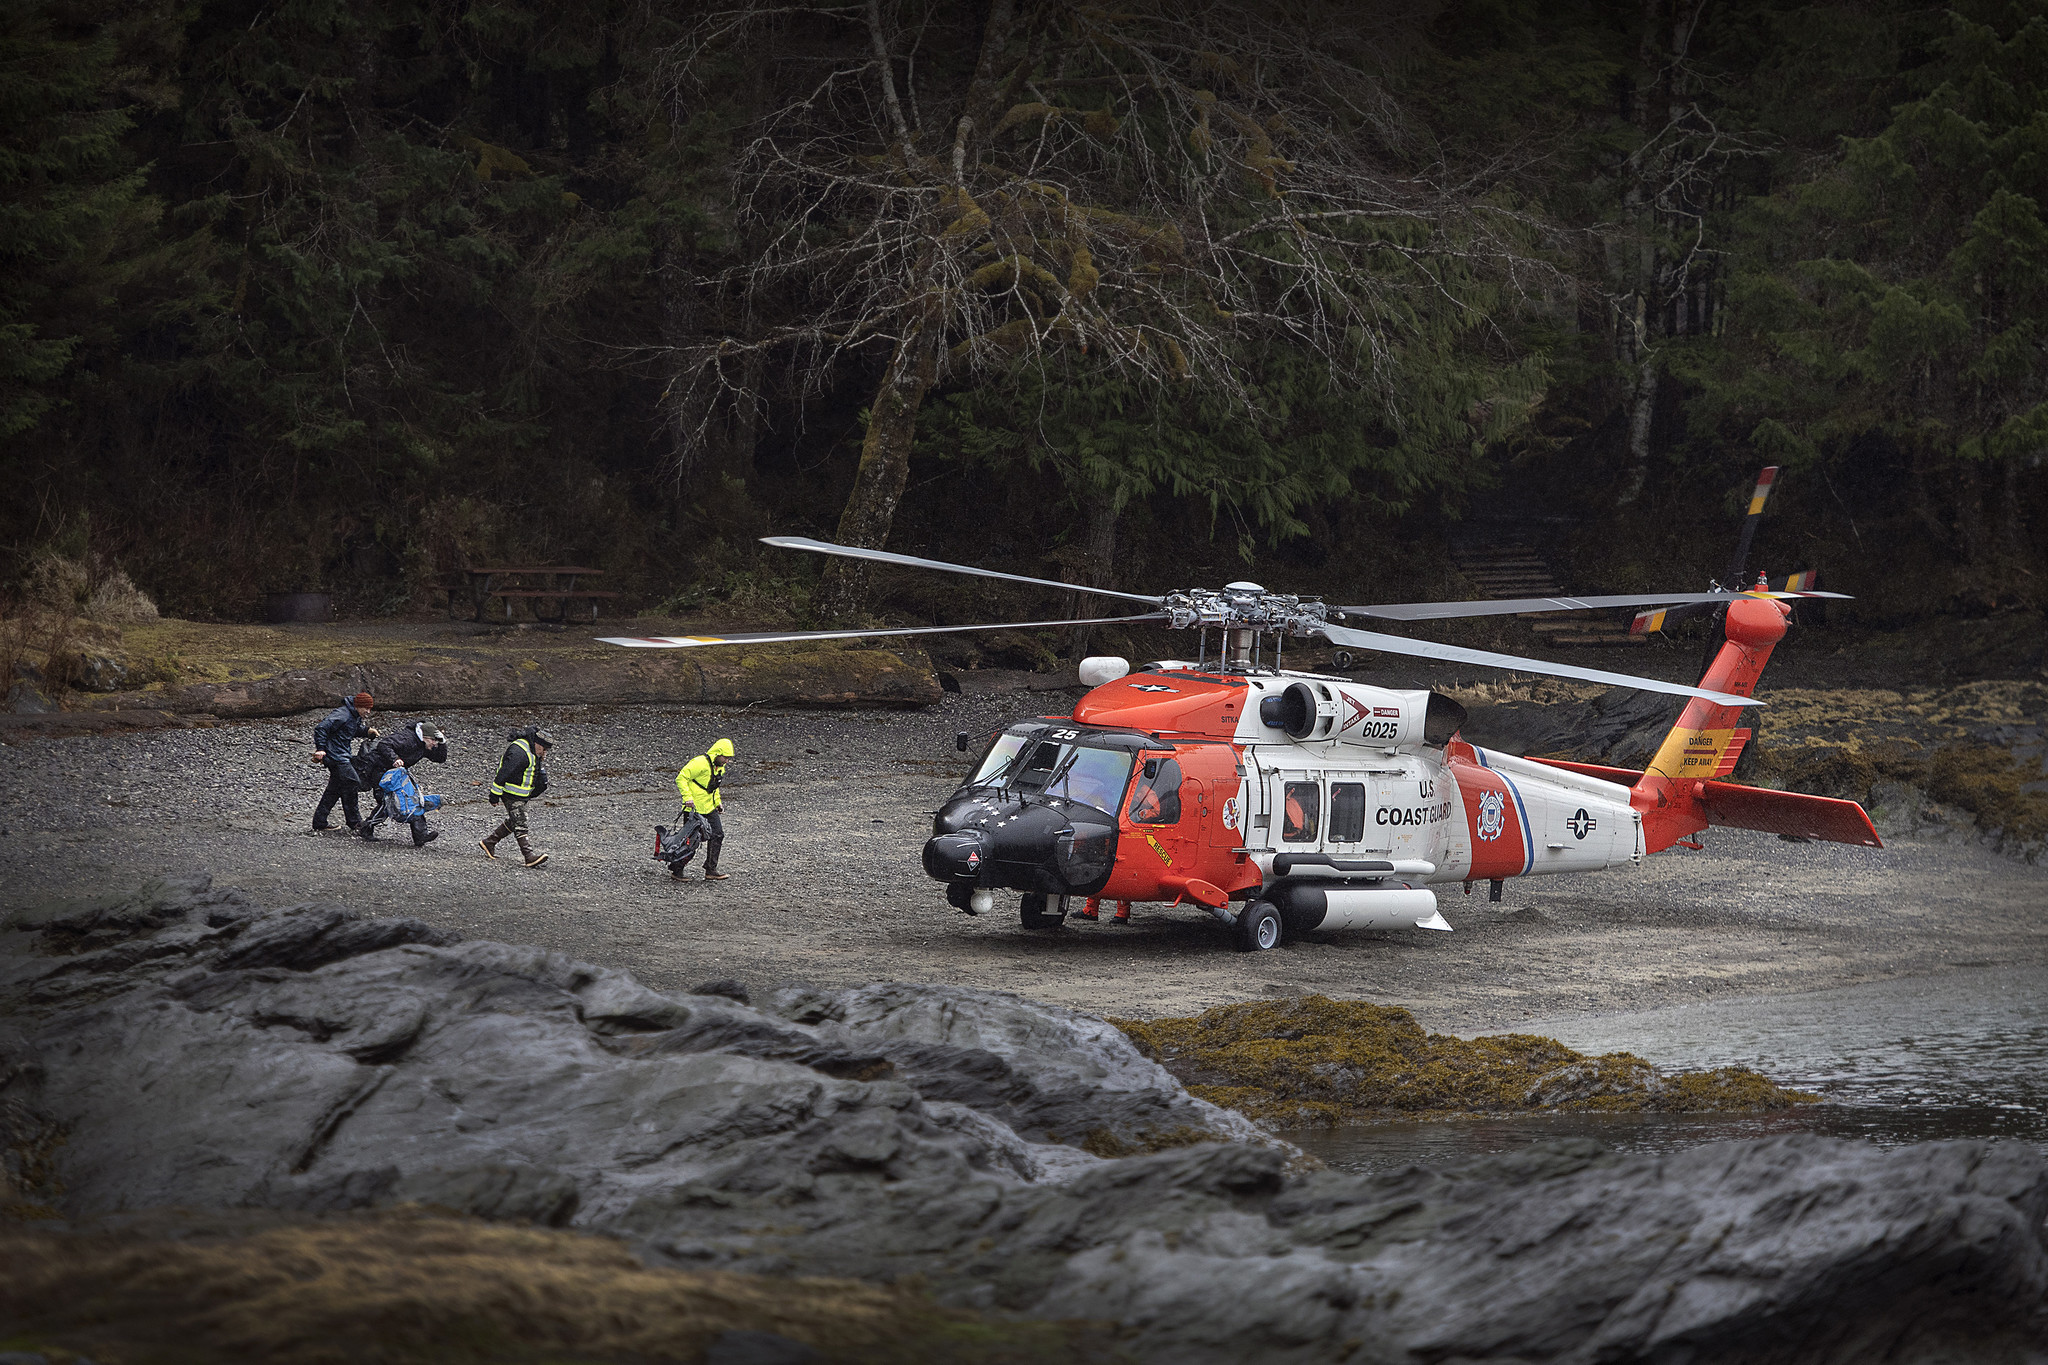 Searchers find body of 5-year-old boy lost on Alaskan hike